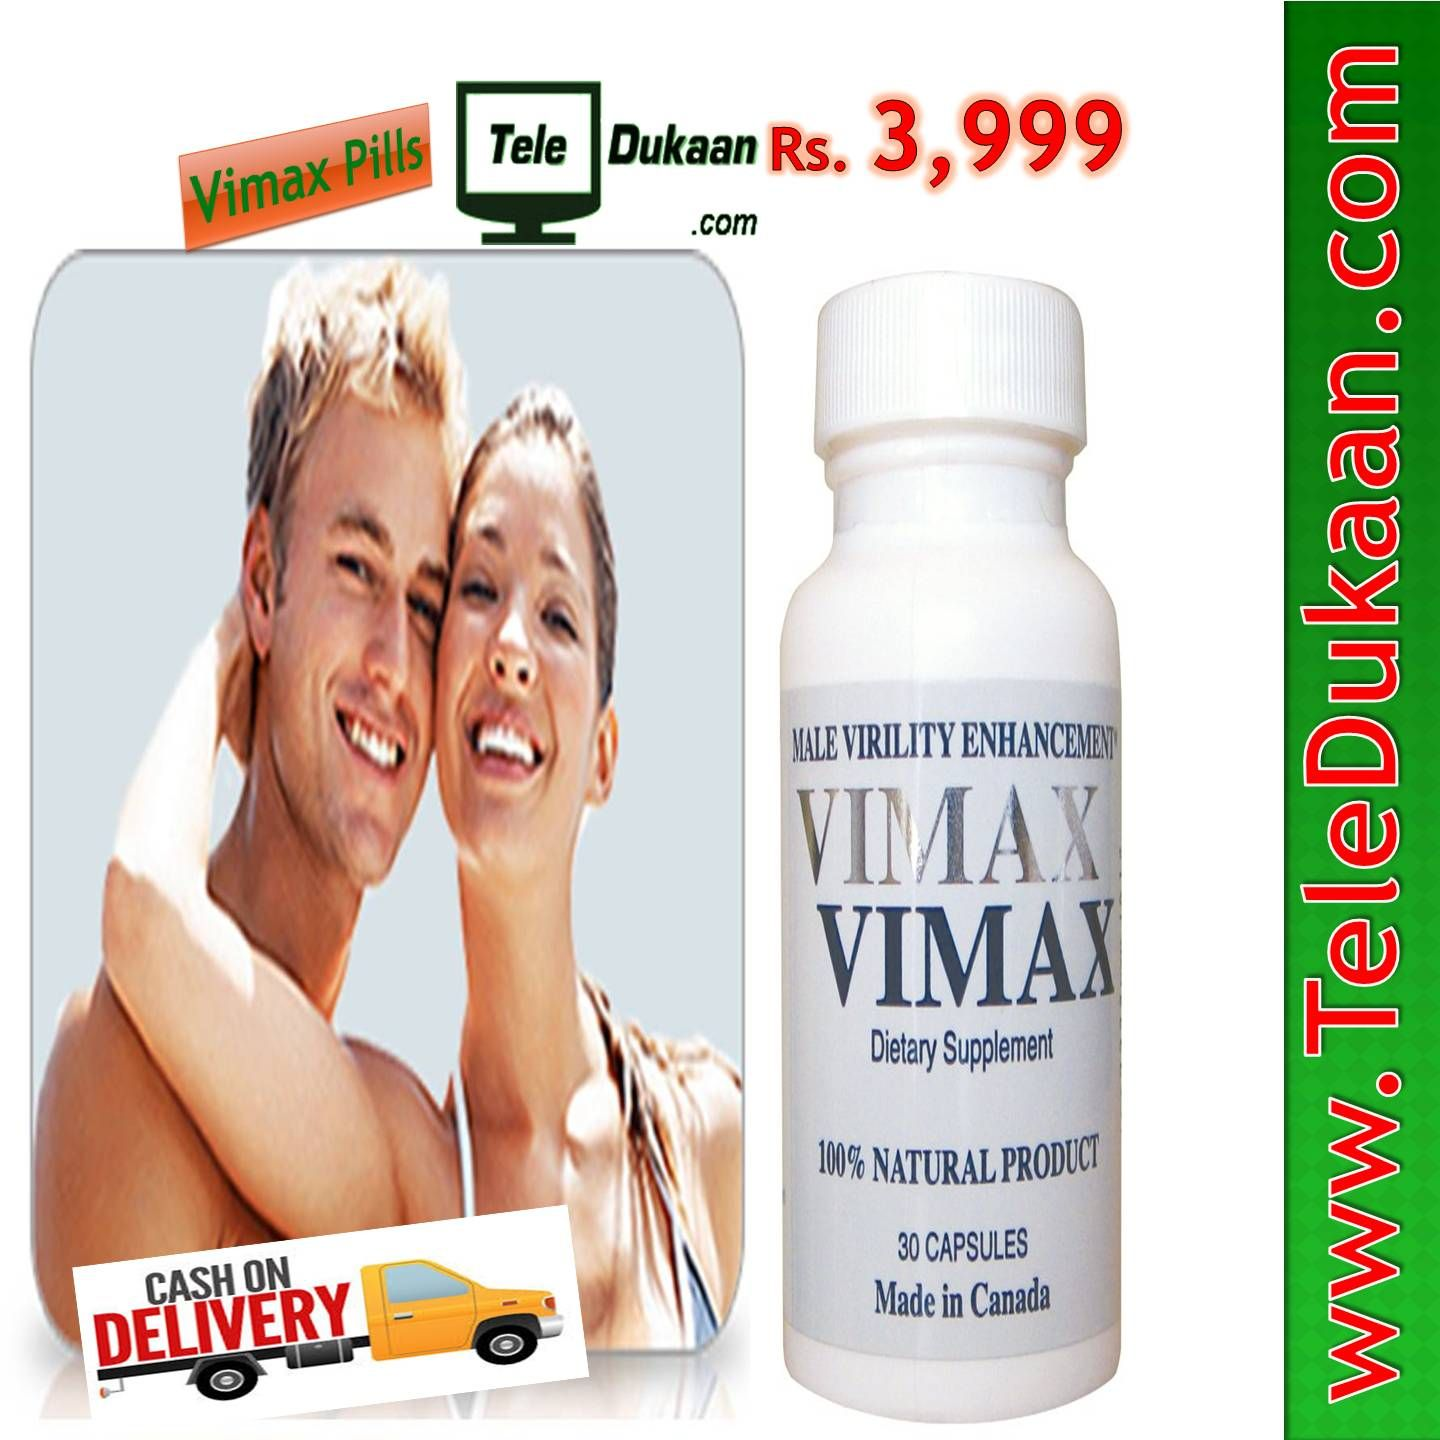 vimax results increase in size from 1 4 inches increase in girth